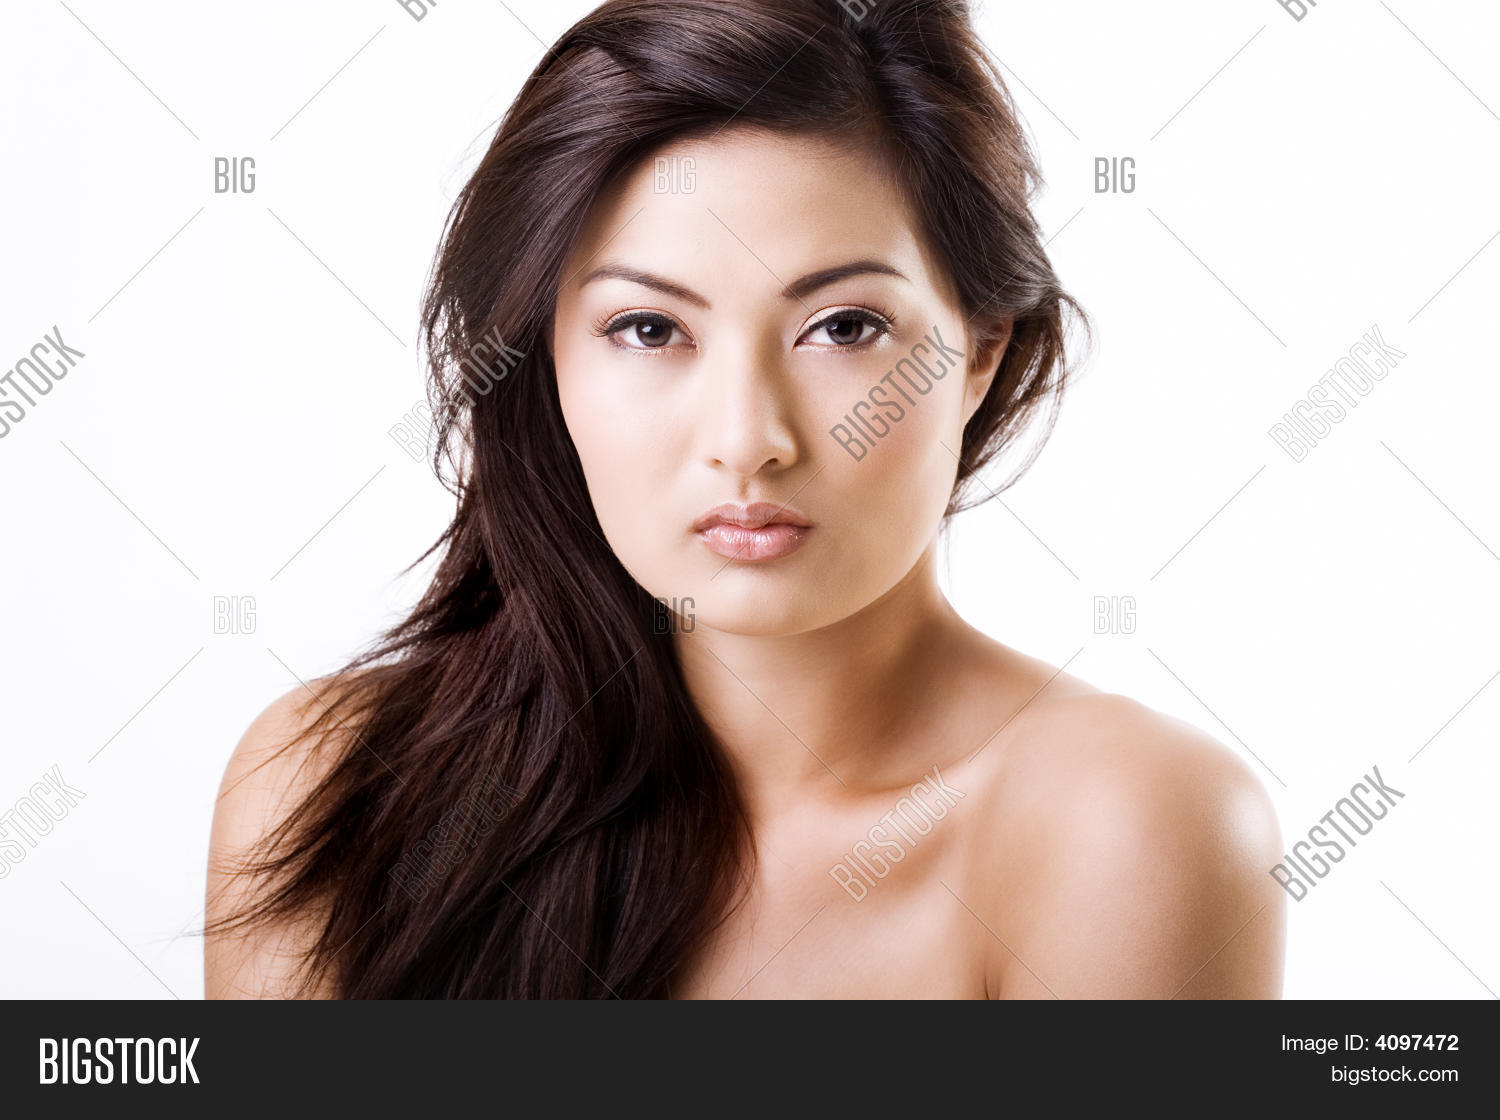 woman Beautiful asian